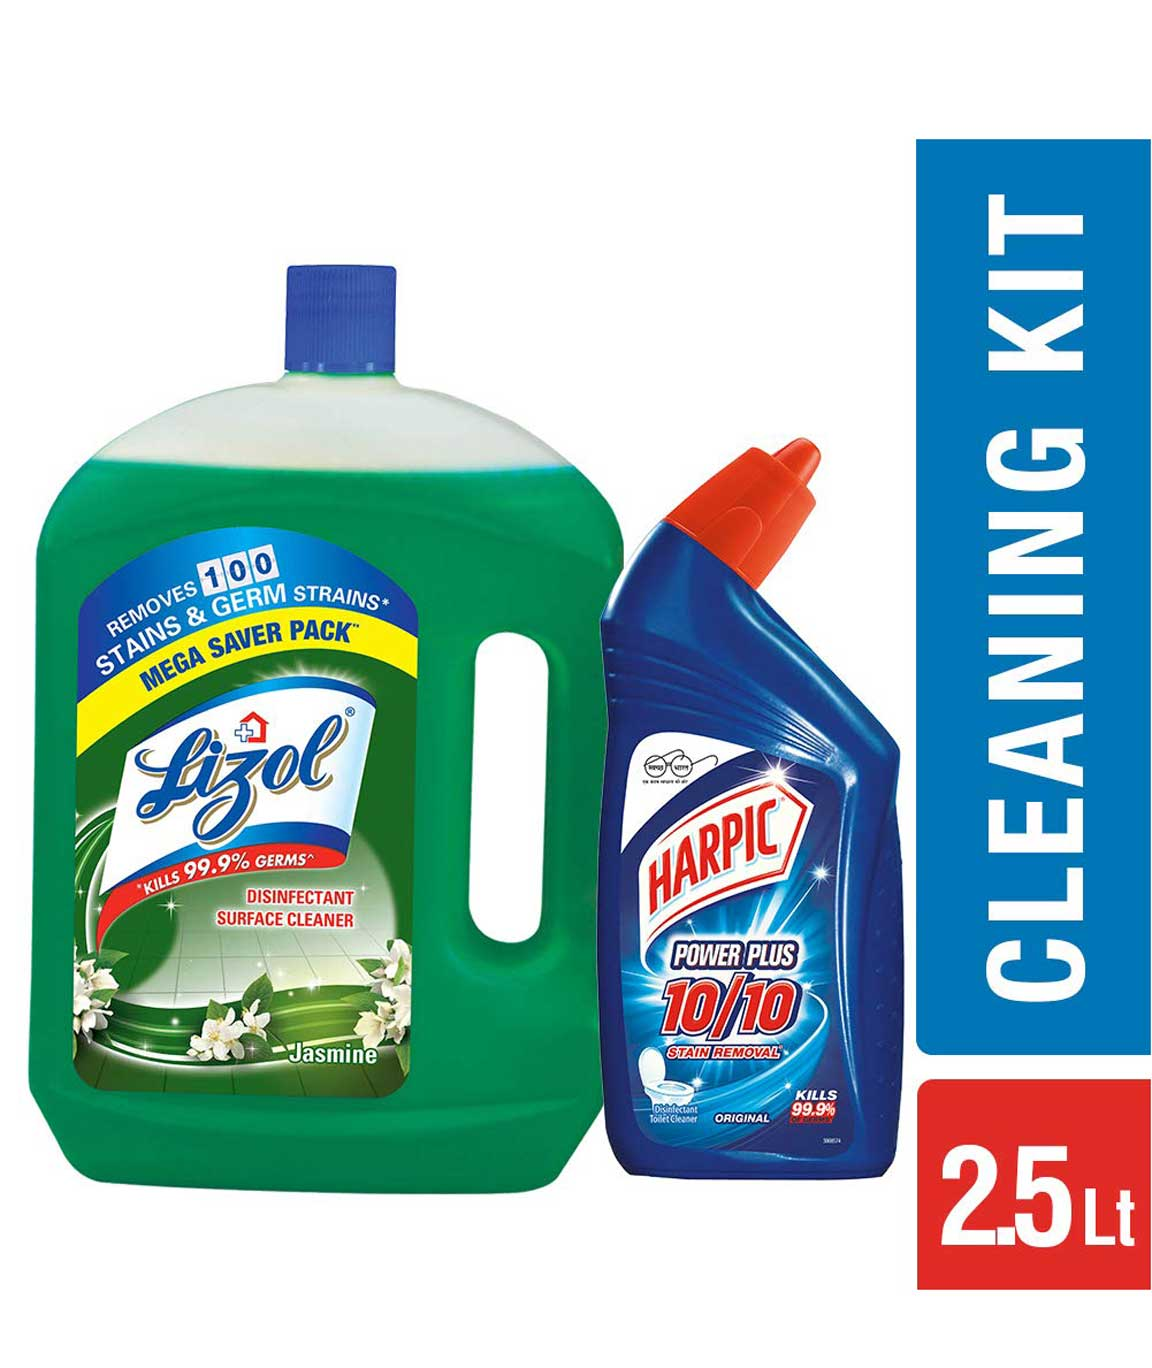 Lizol Disinfectant Floor Cleaner Jasmine- 2 litre with Free Harpic Power Plus Toilet Cleaner 500 ml (Any Variant)